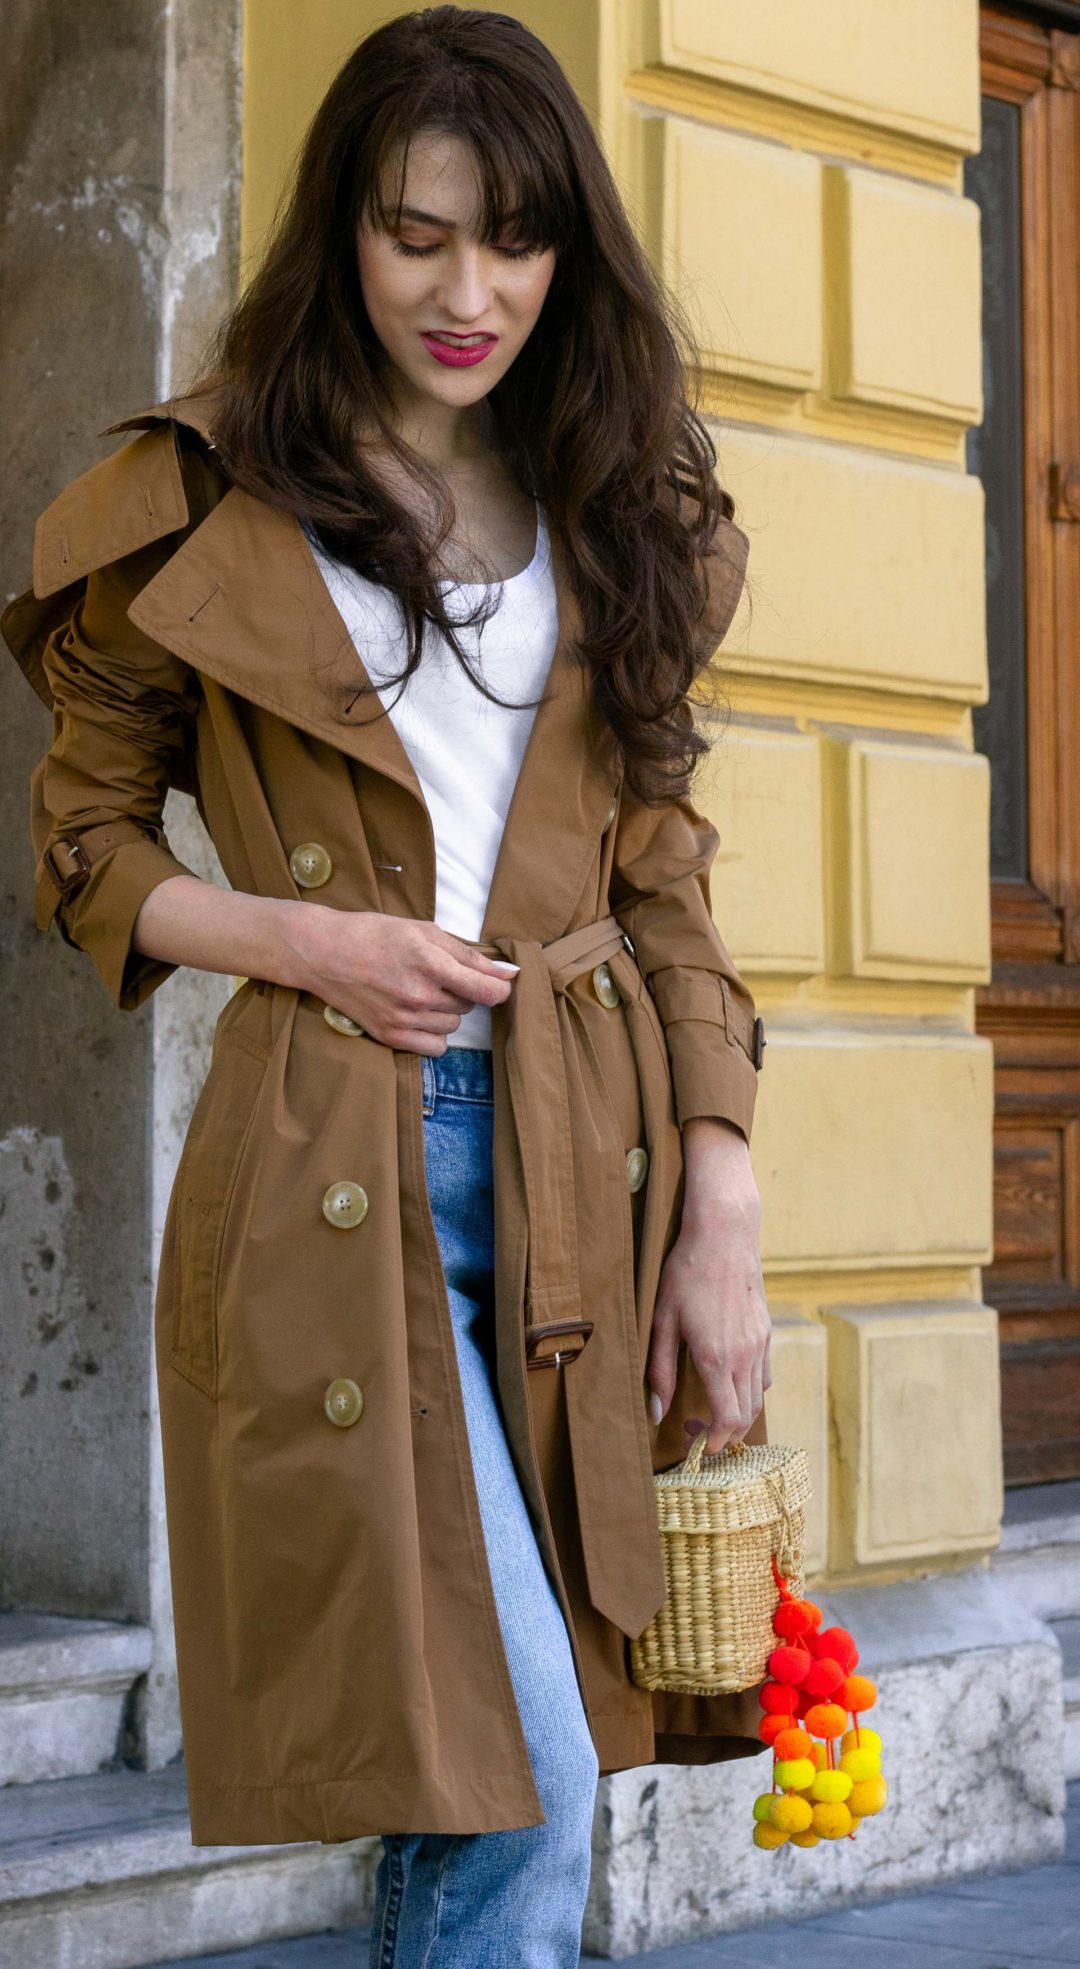 Must follow Fashion Blogger Veronika Lipar of Brunette from Wall Street wearing Burberry trench coat A.P.C. Paris blue denim jeans white T-shirt Nannacay basket bag sunglasses when it rains